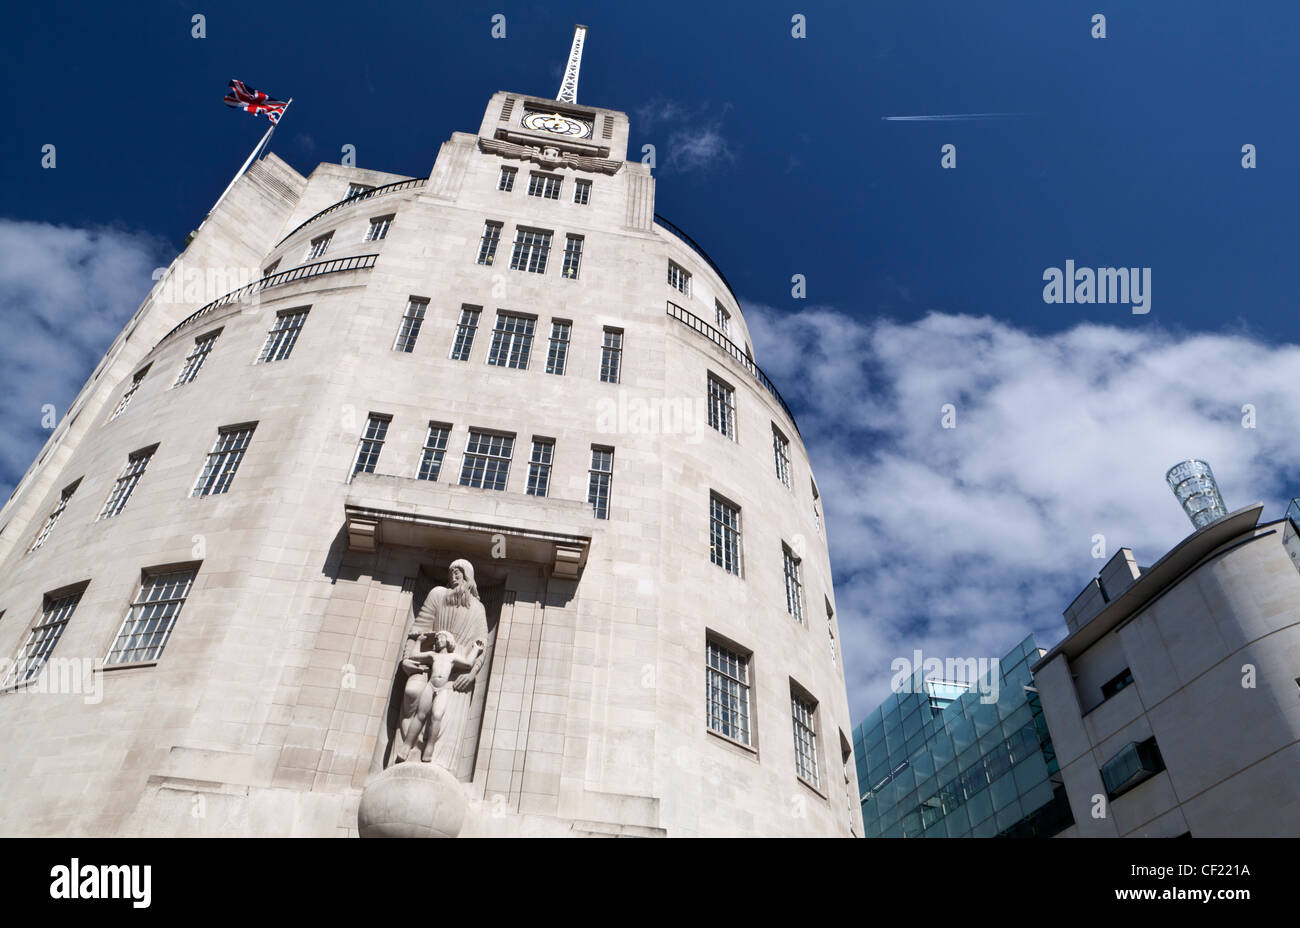 Broadcasting House, built in 1932, the BBC's corporate headquarters. The building was designed by Lieutenant - Stock Image